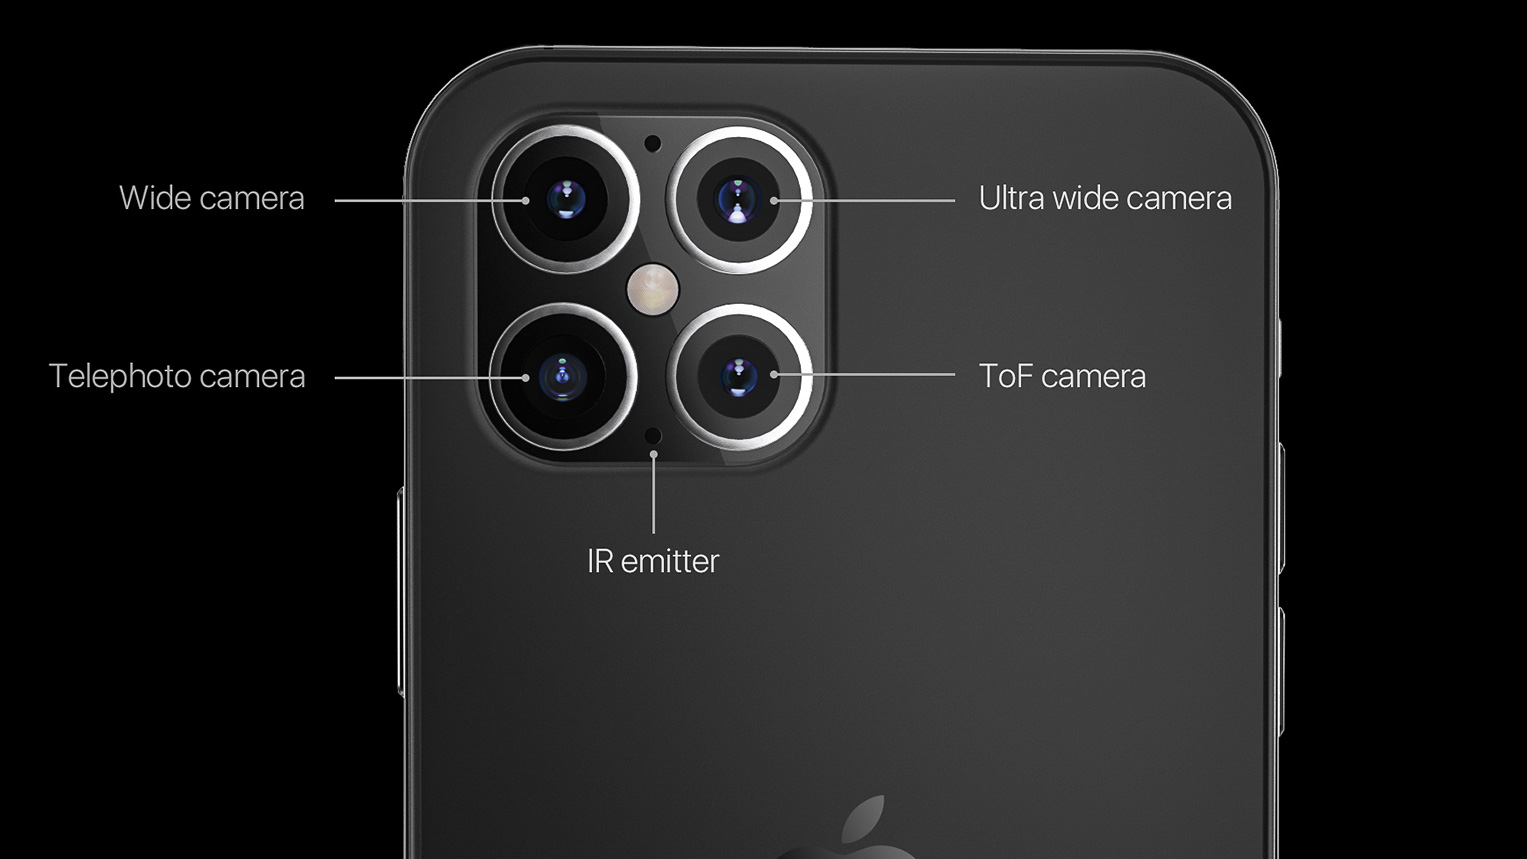 iPhone 12 set to have four cameras according to latest rumors | Digital Camera World